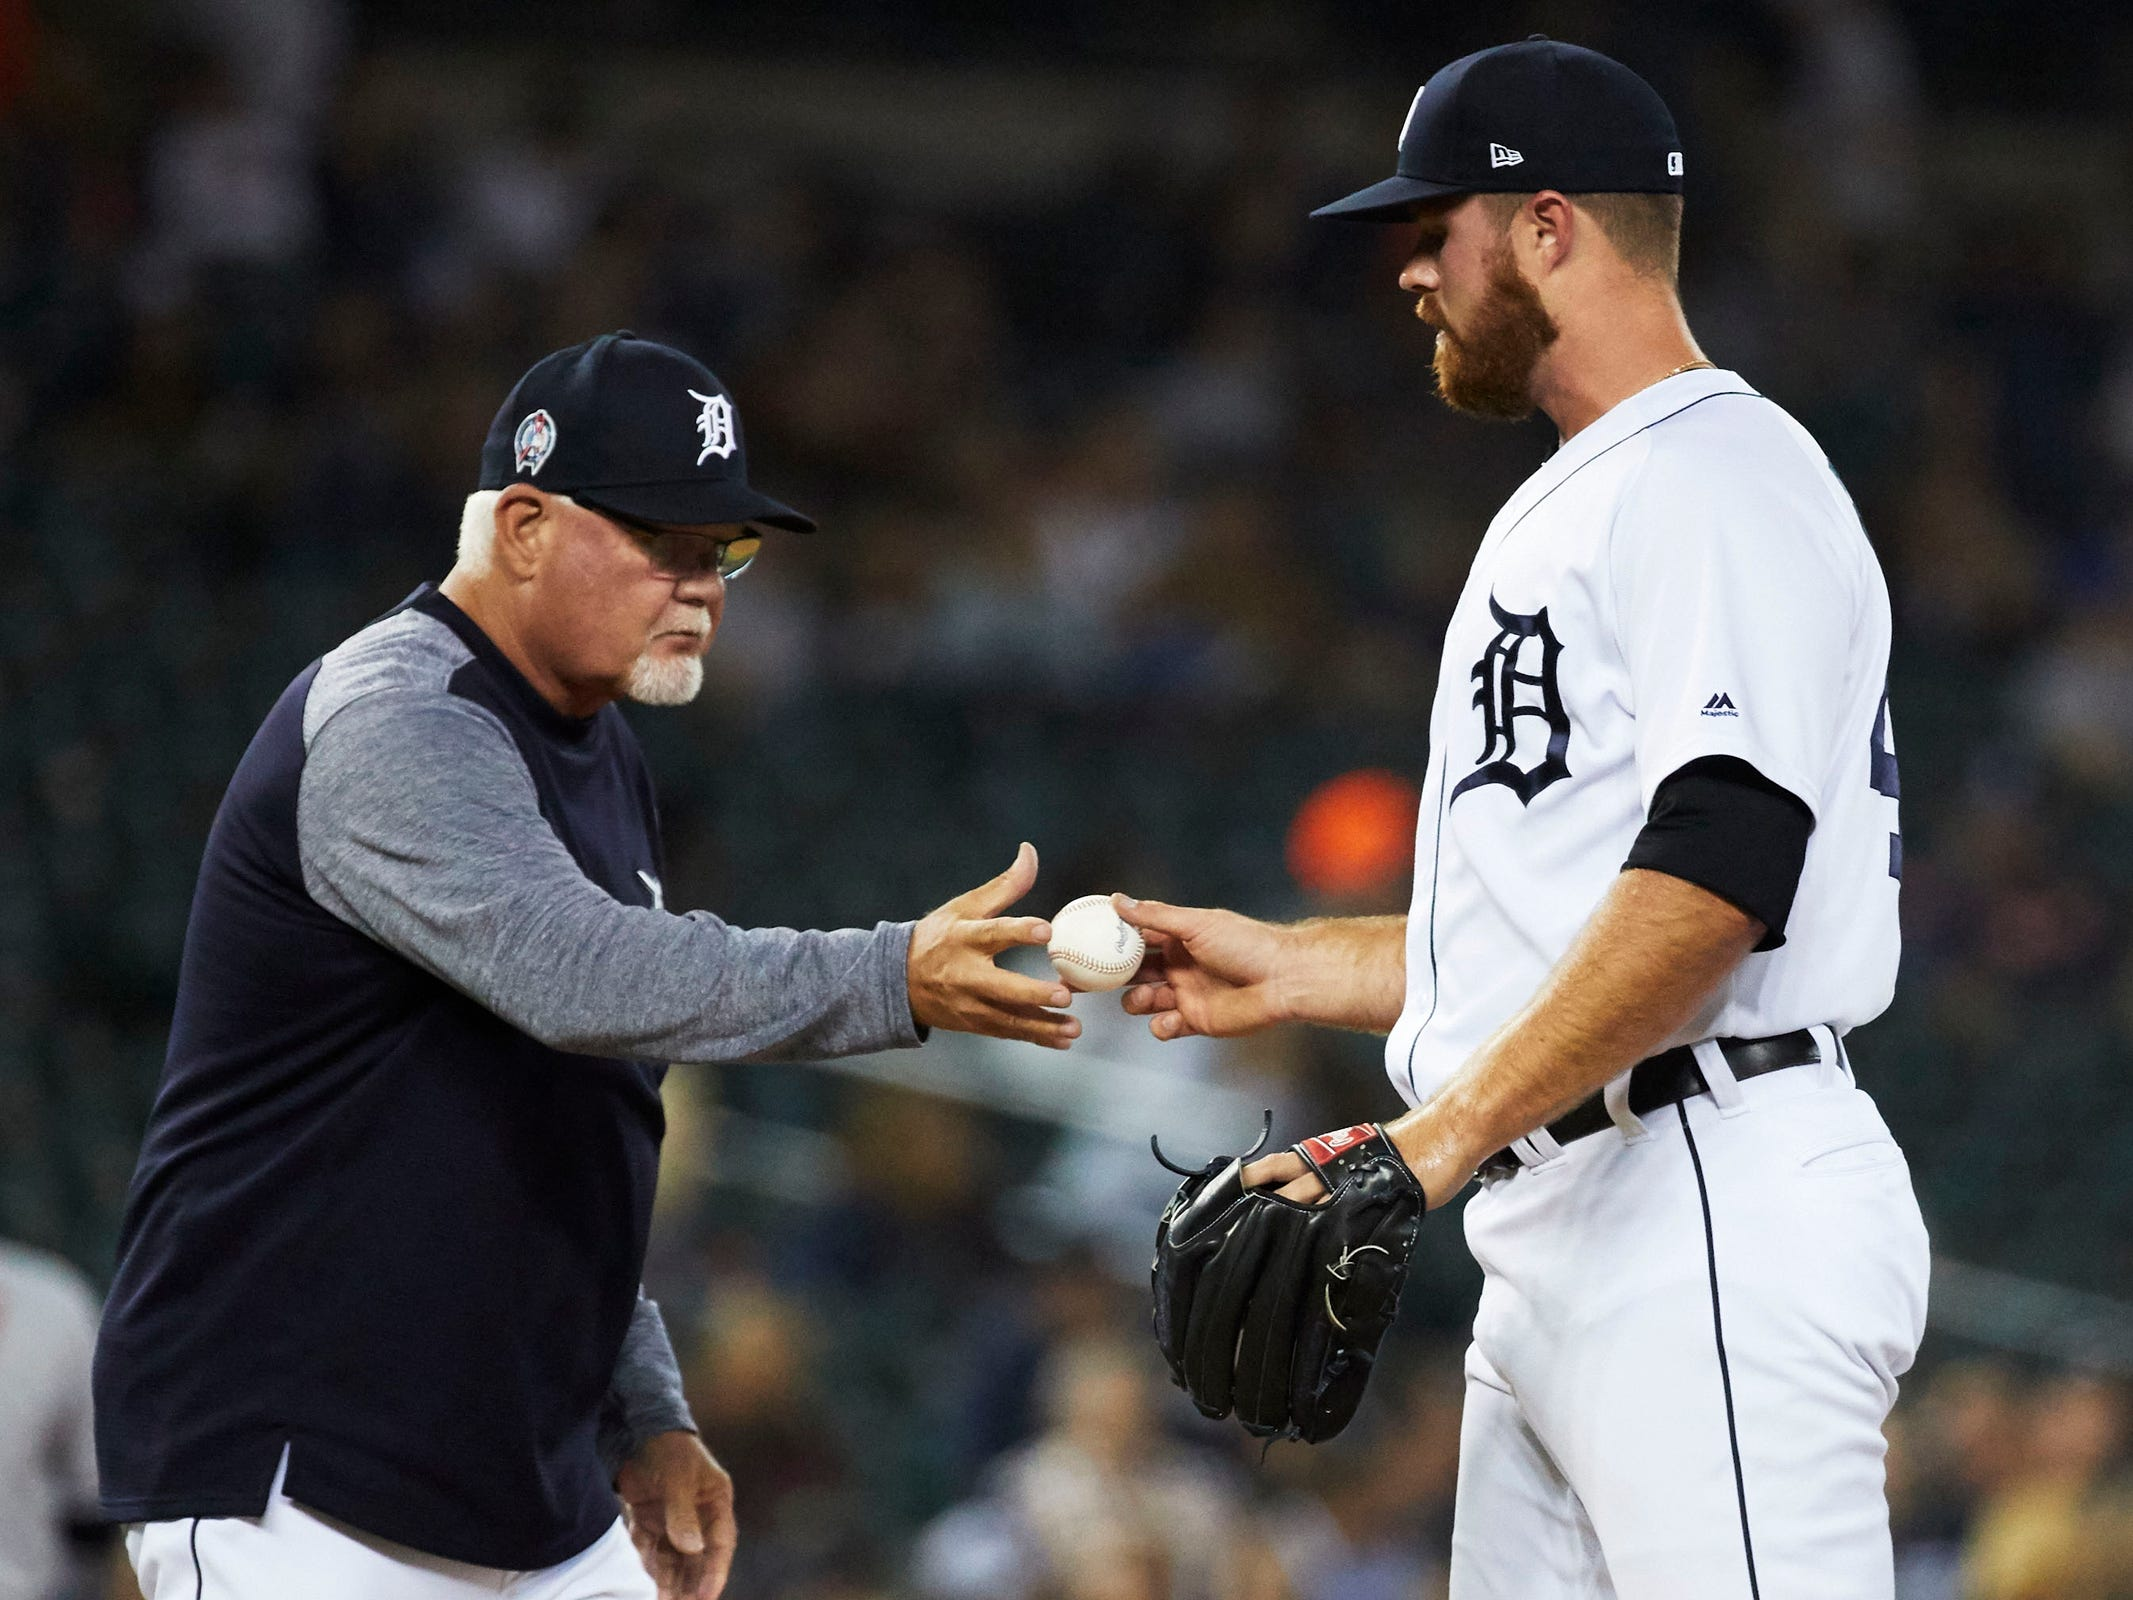 Detroit Tigers manager Ron Gardenhire (15) takes the ball to relieve relief pitcher Buck Farmer (45) in the sixth inning against the Houston Astros at Comerica Park, Tuesday, Sept. 11, 2018.